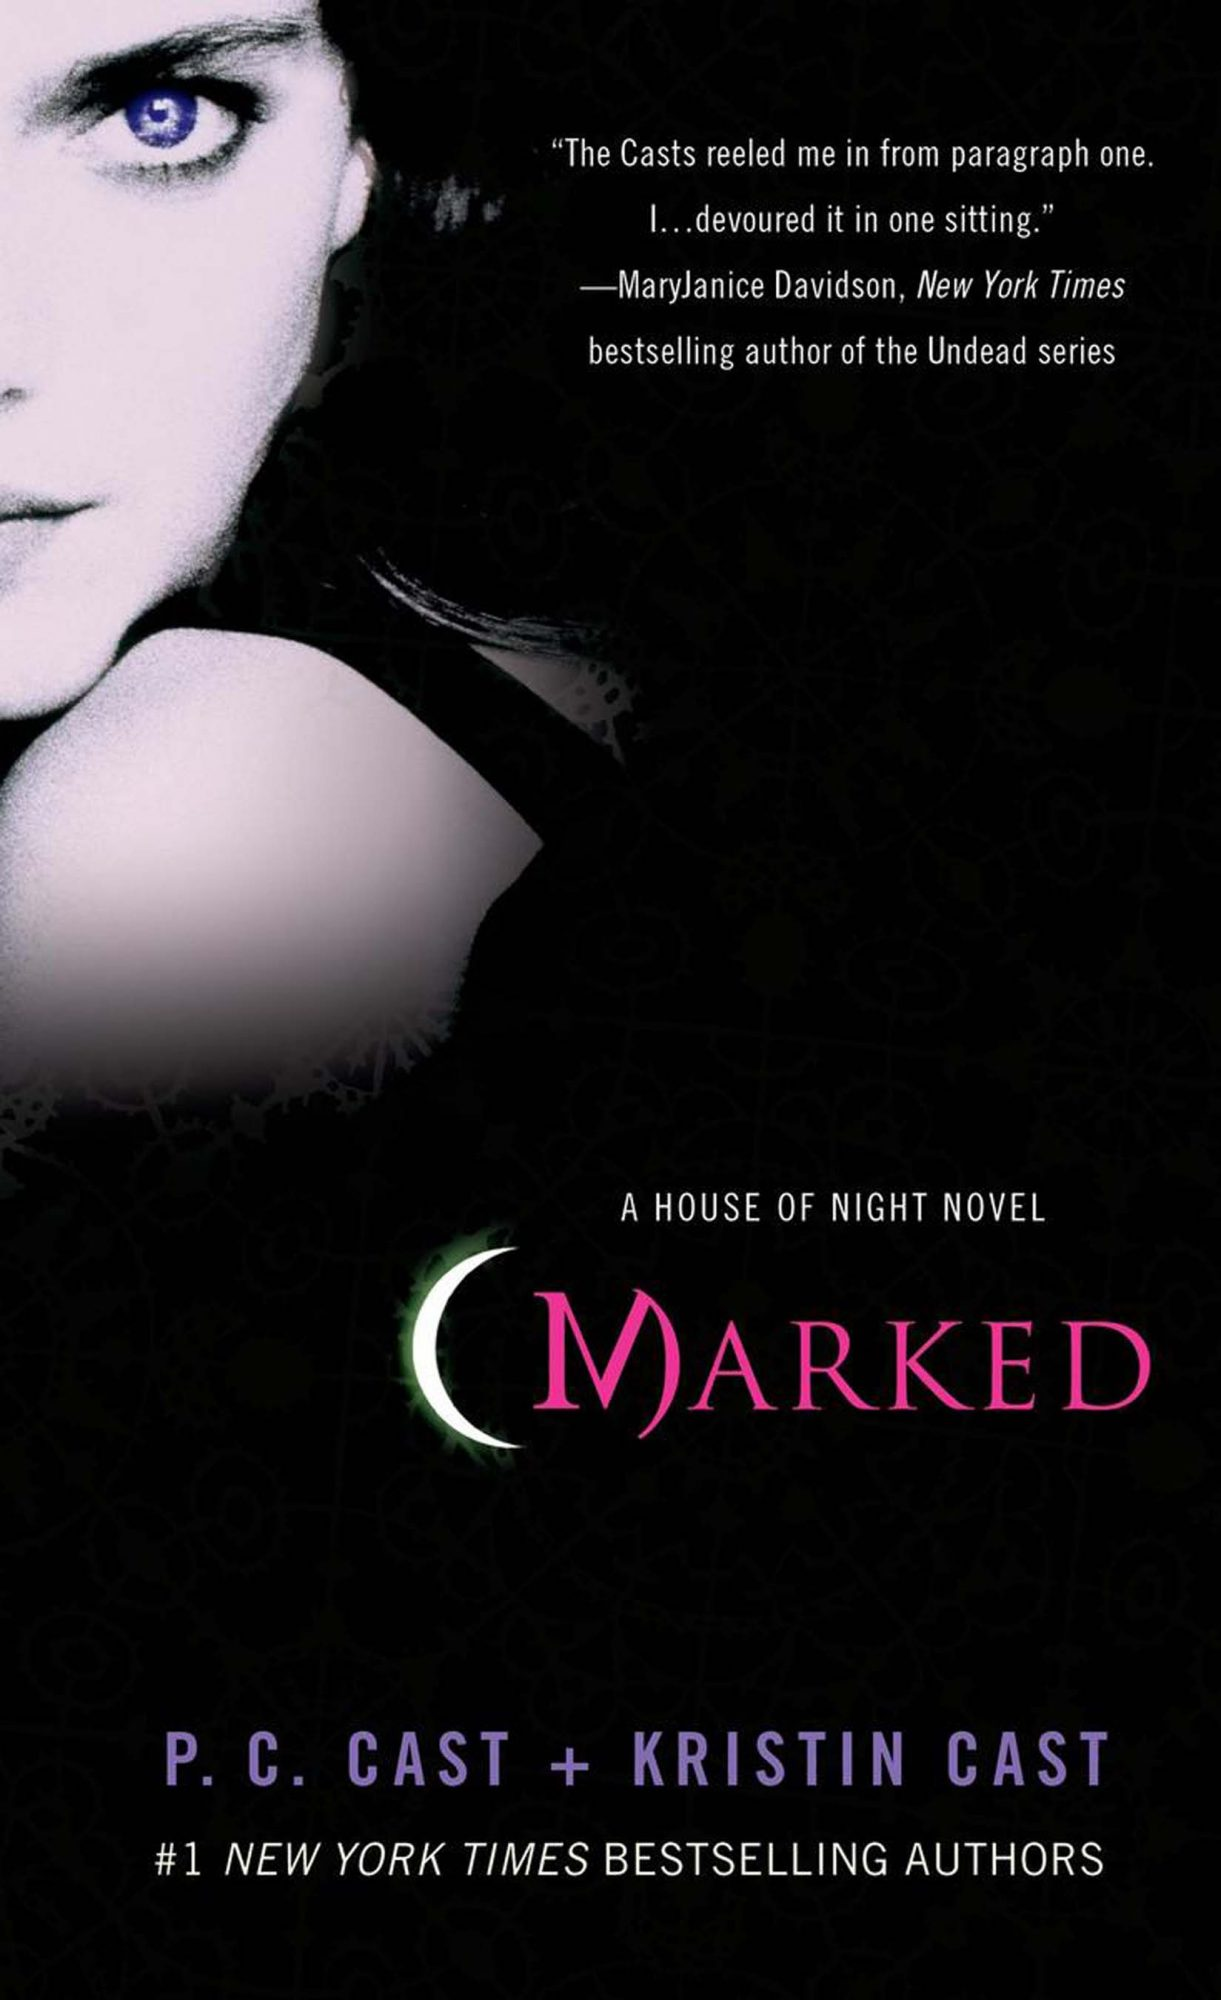 marked-a-house-of-night-novel